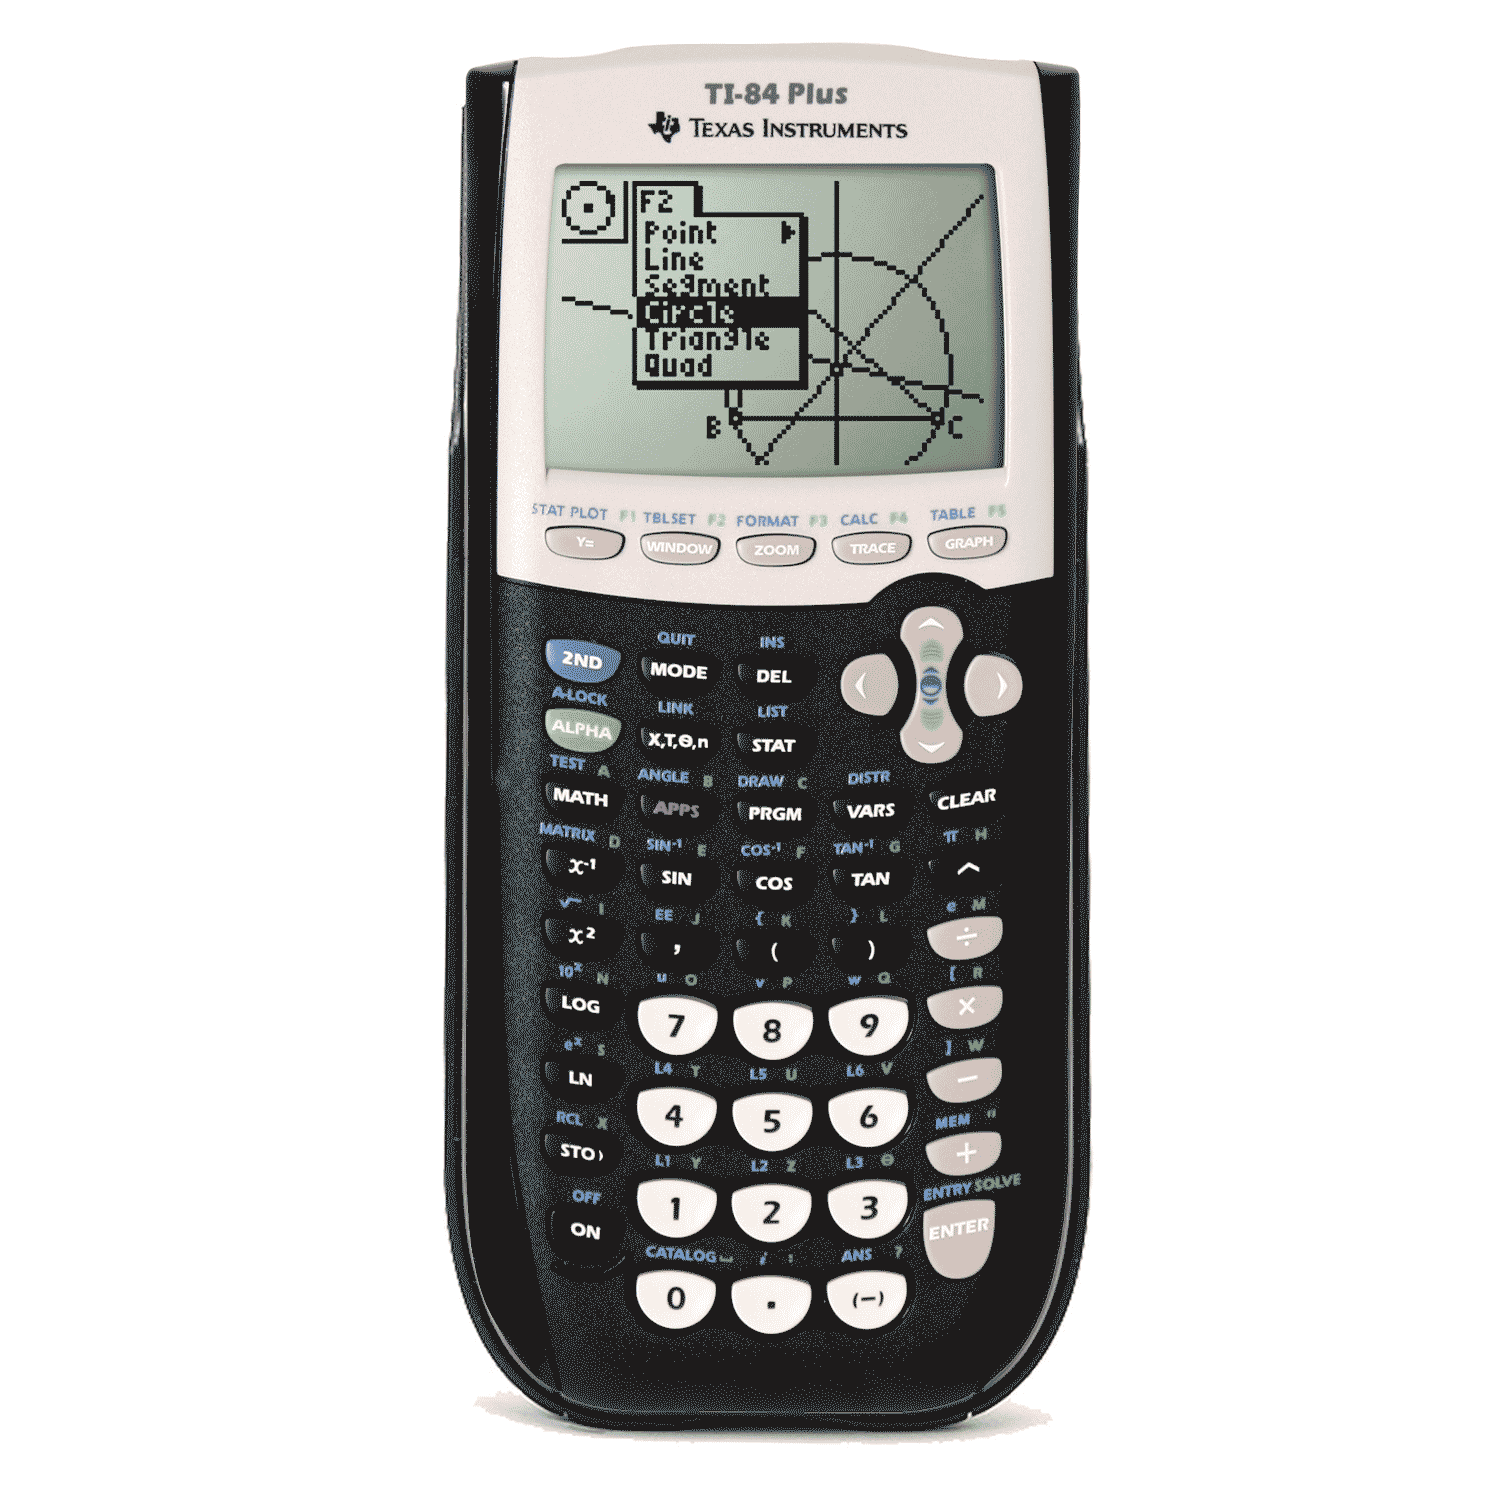 Amazon.com: Texas Instruments TI-84 Plus Graphics Calculator, Black ...